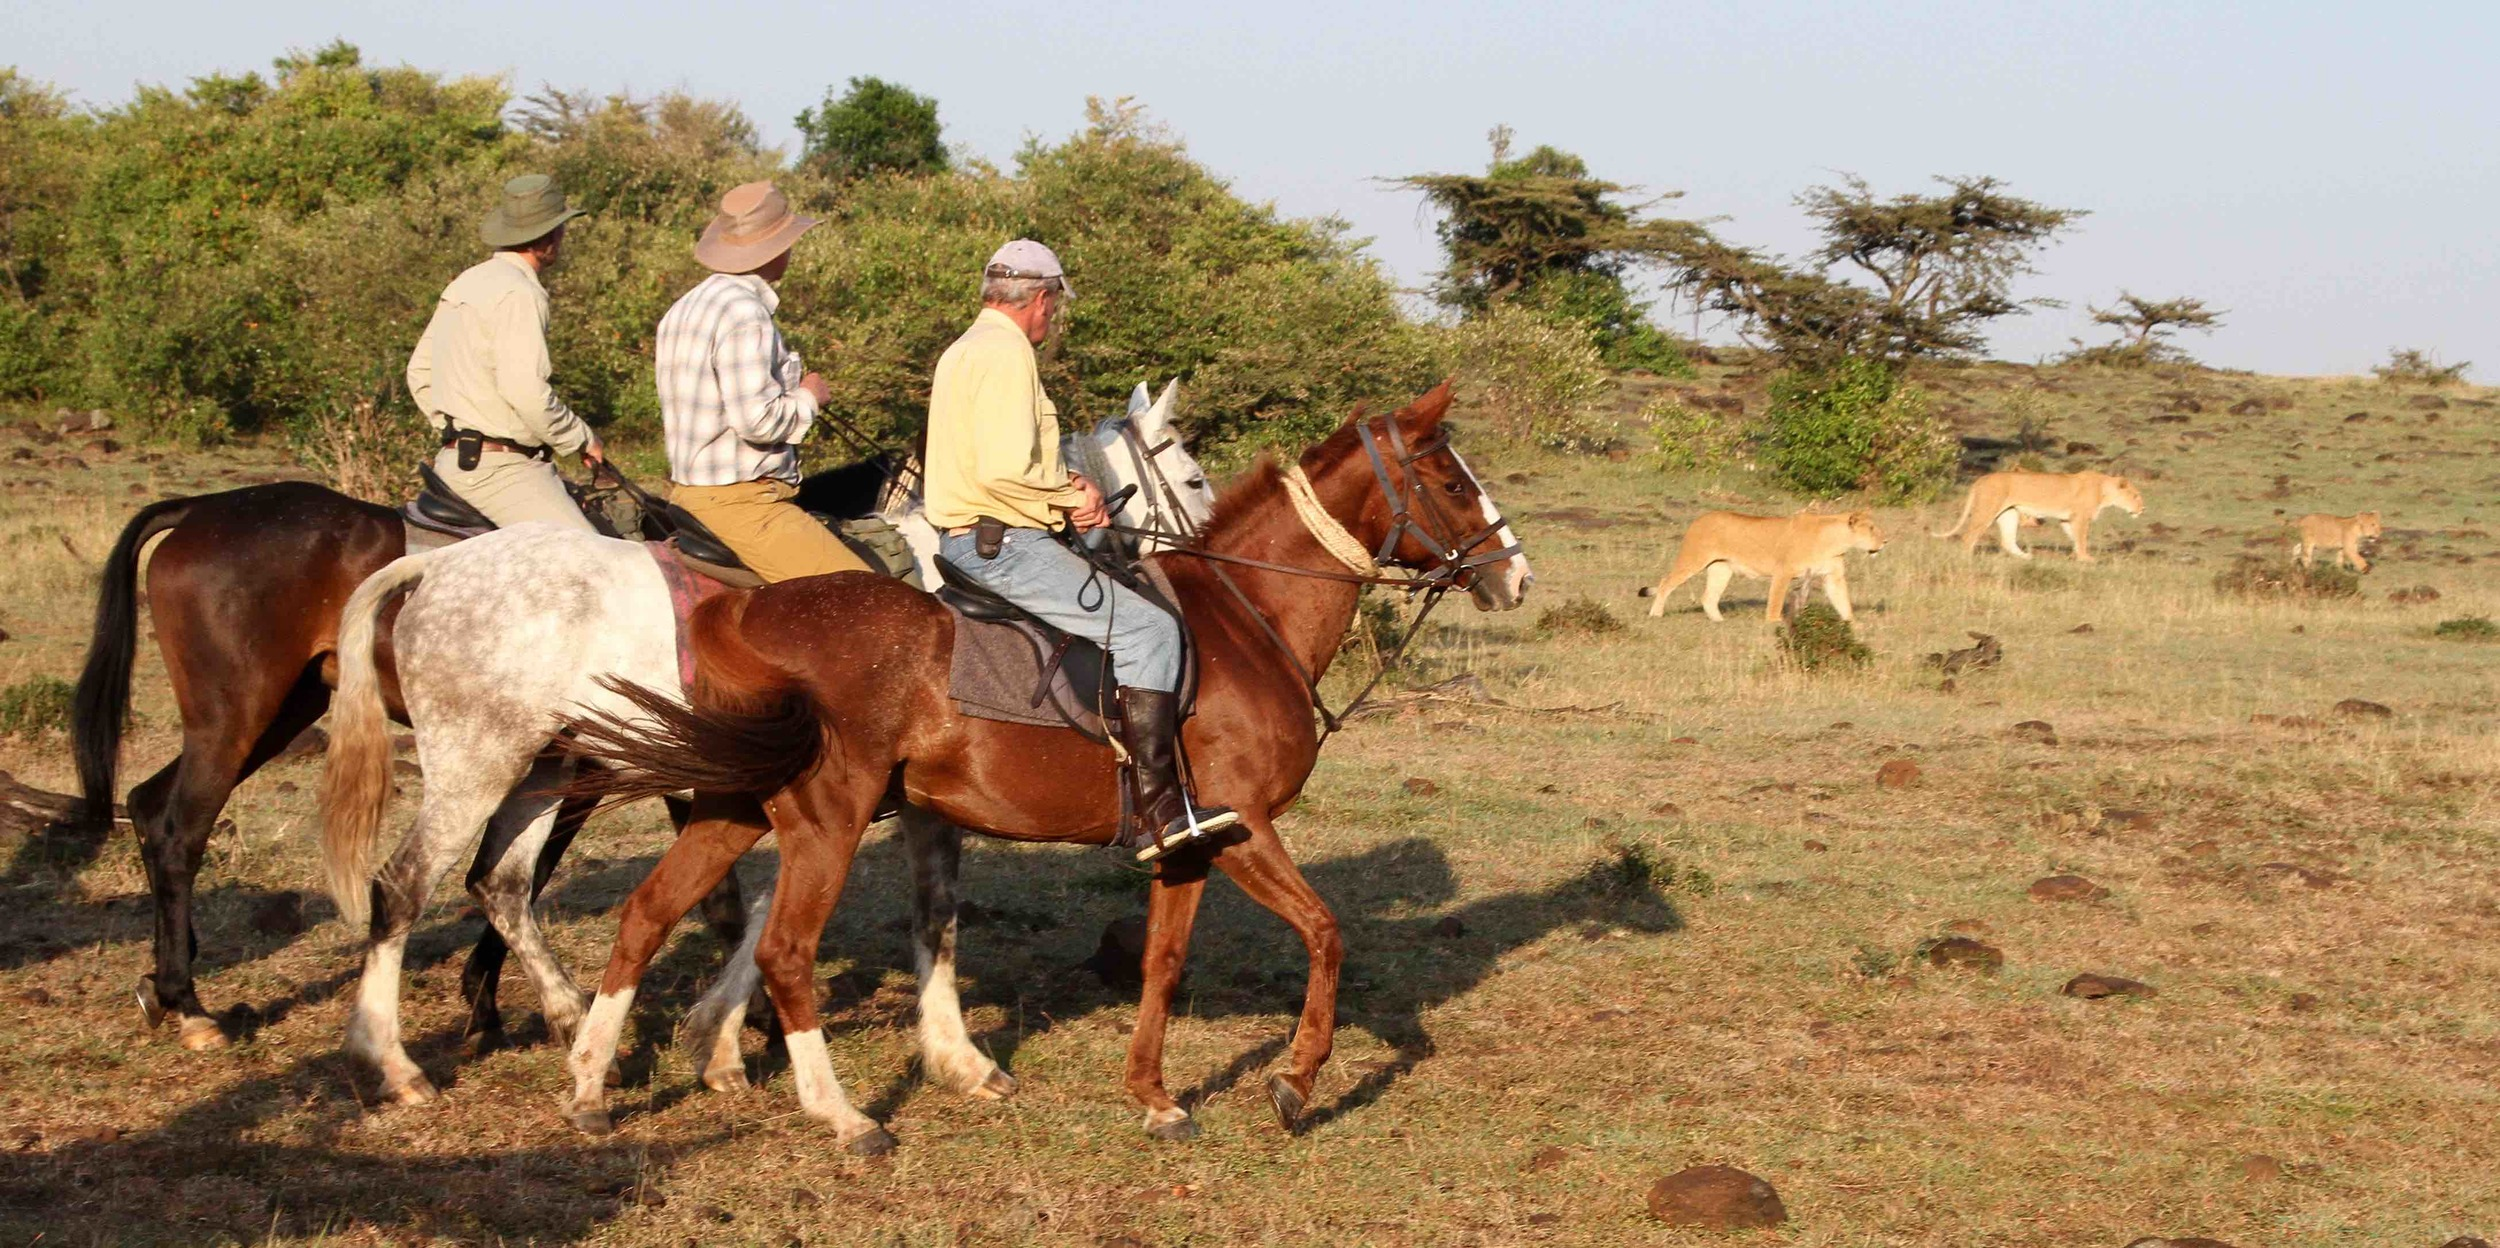 Mobile Riding Safaris   ...extraordinary encounters with big cats